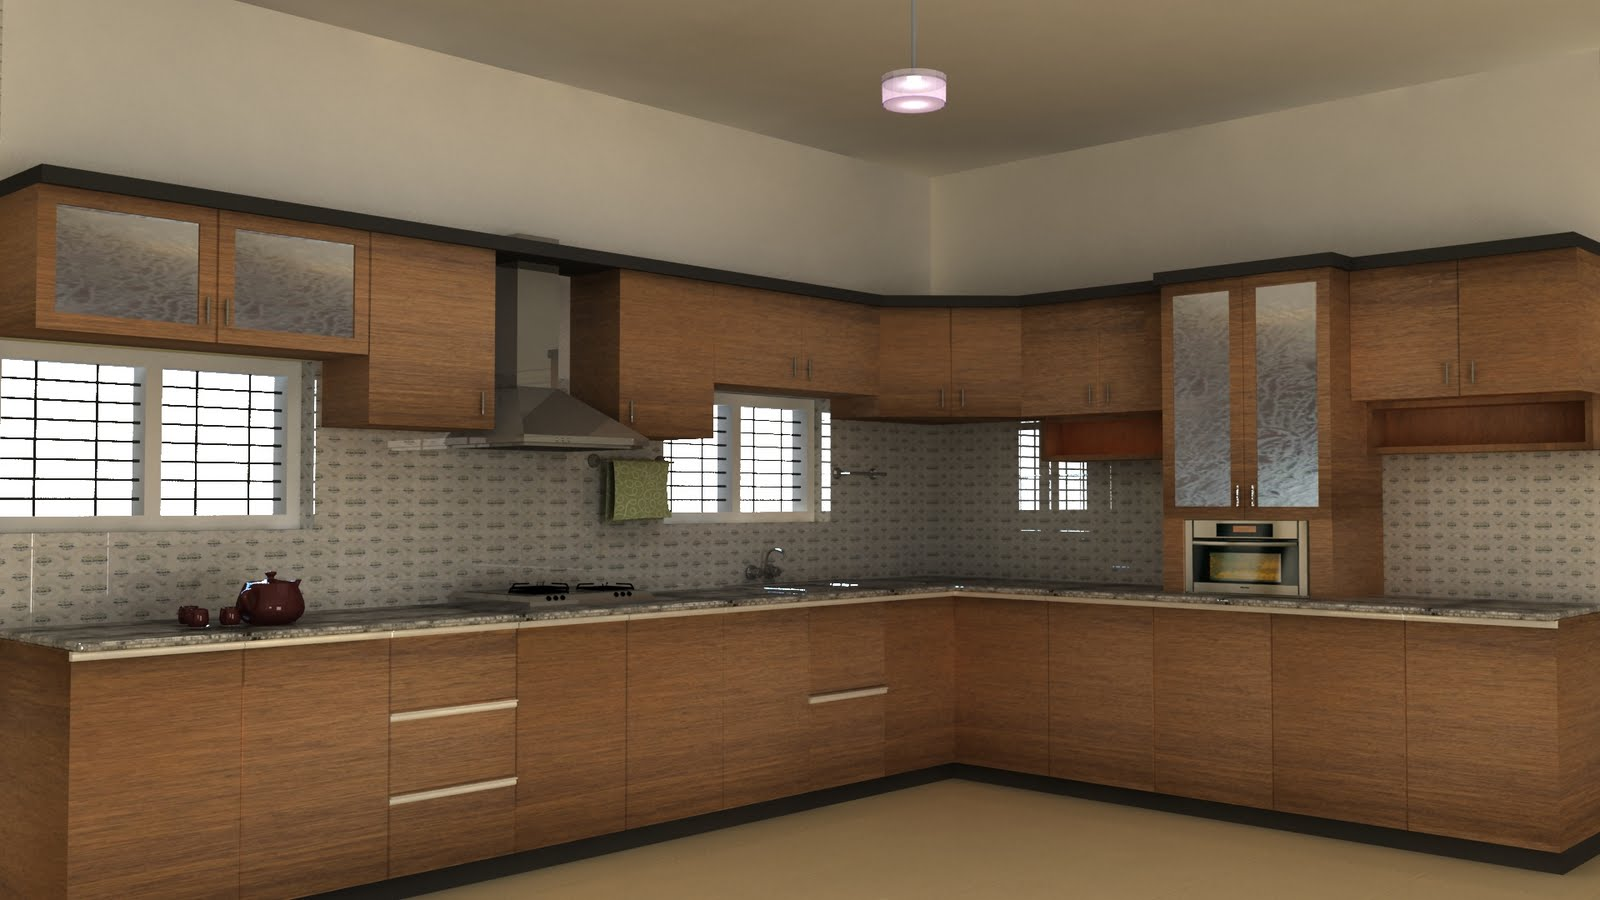 Architectural designing kitchen interiors for Inter designing